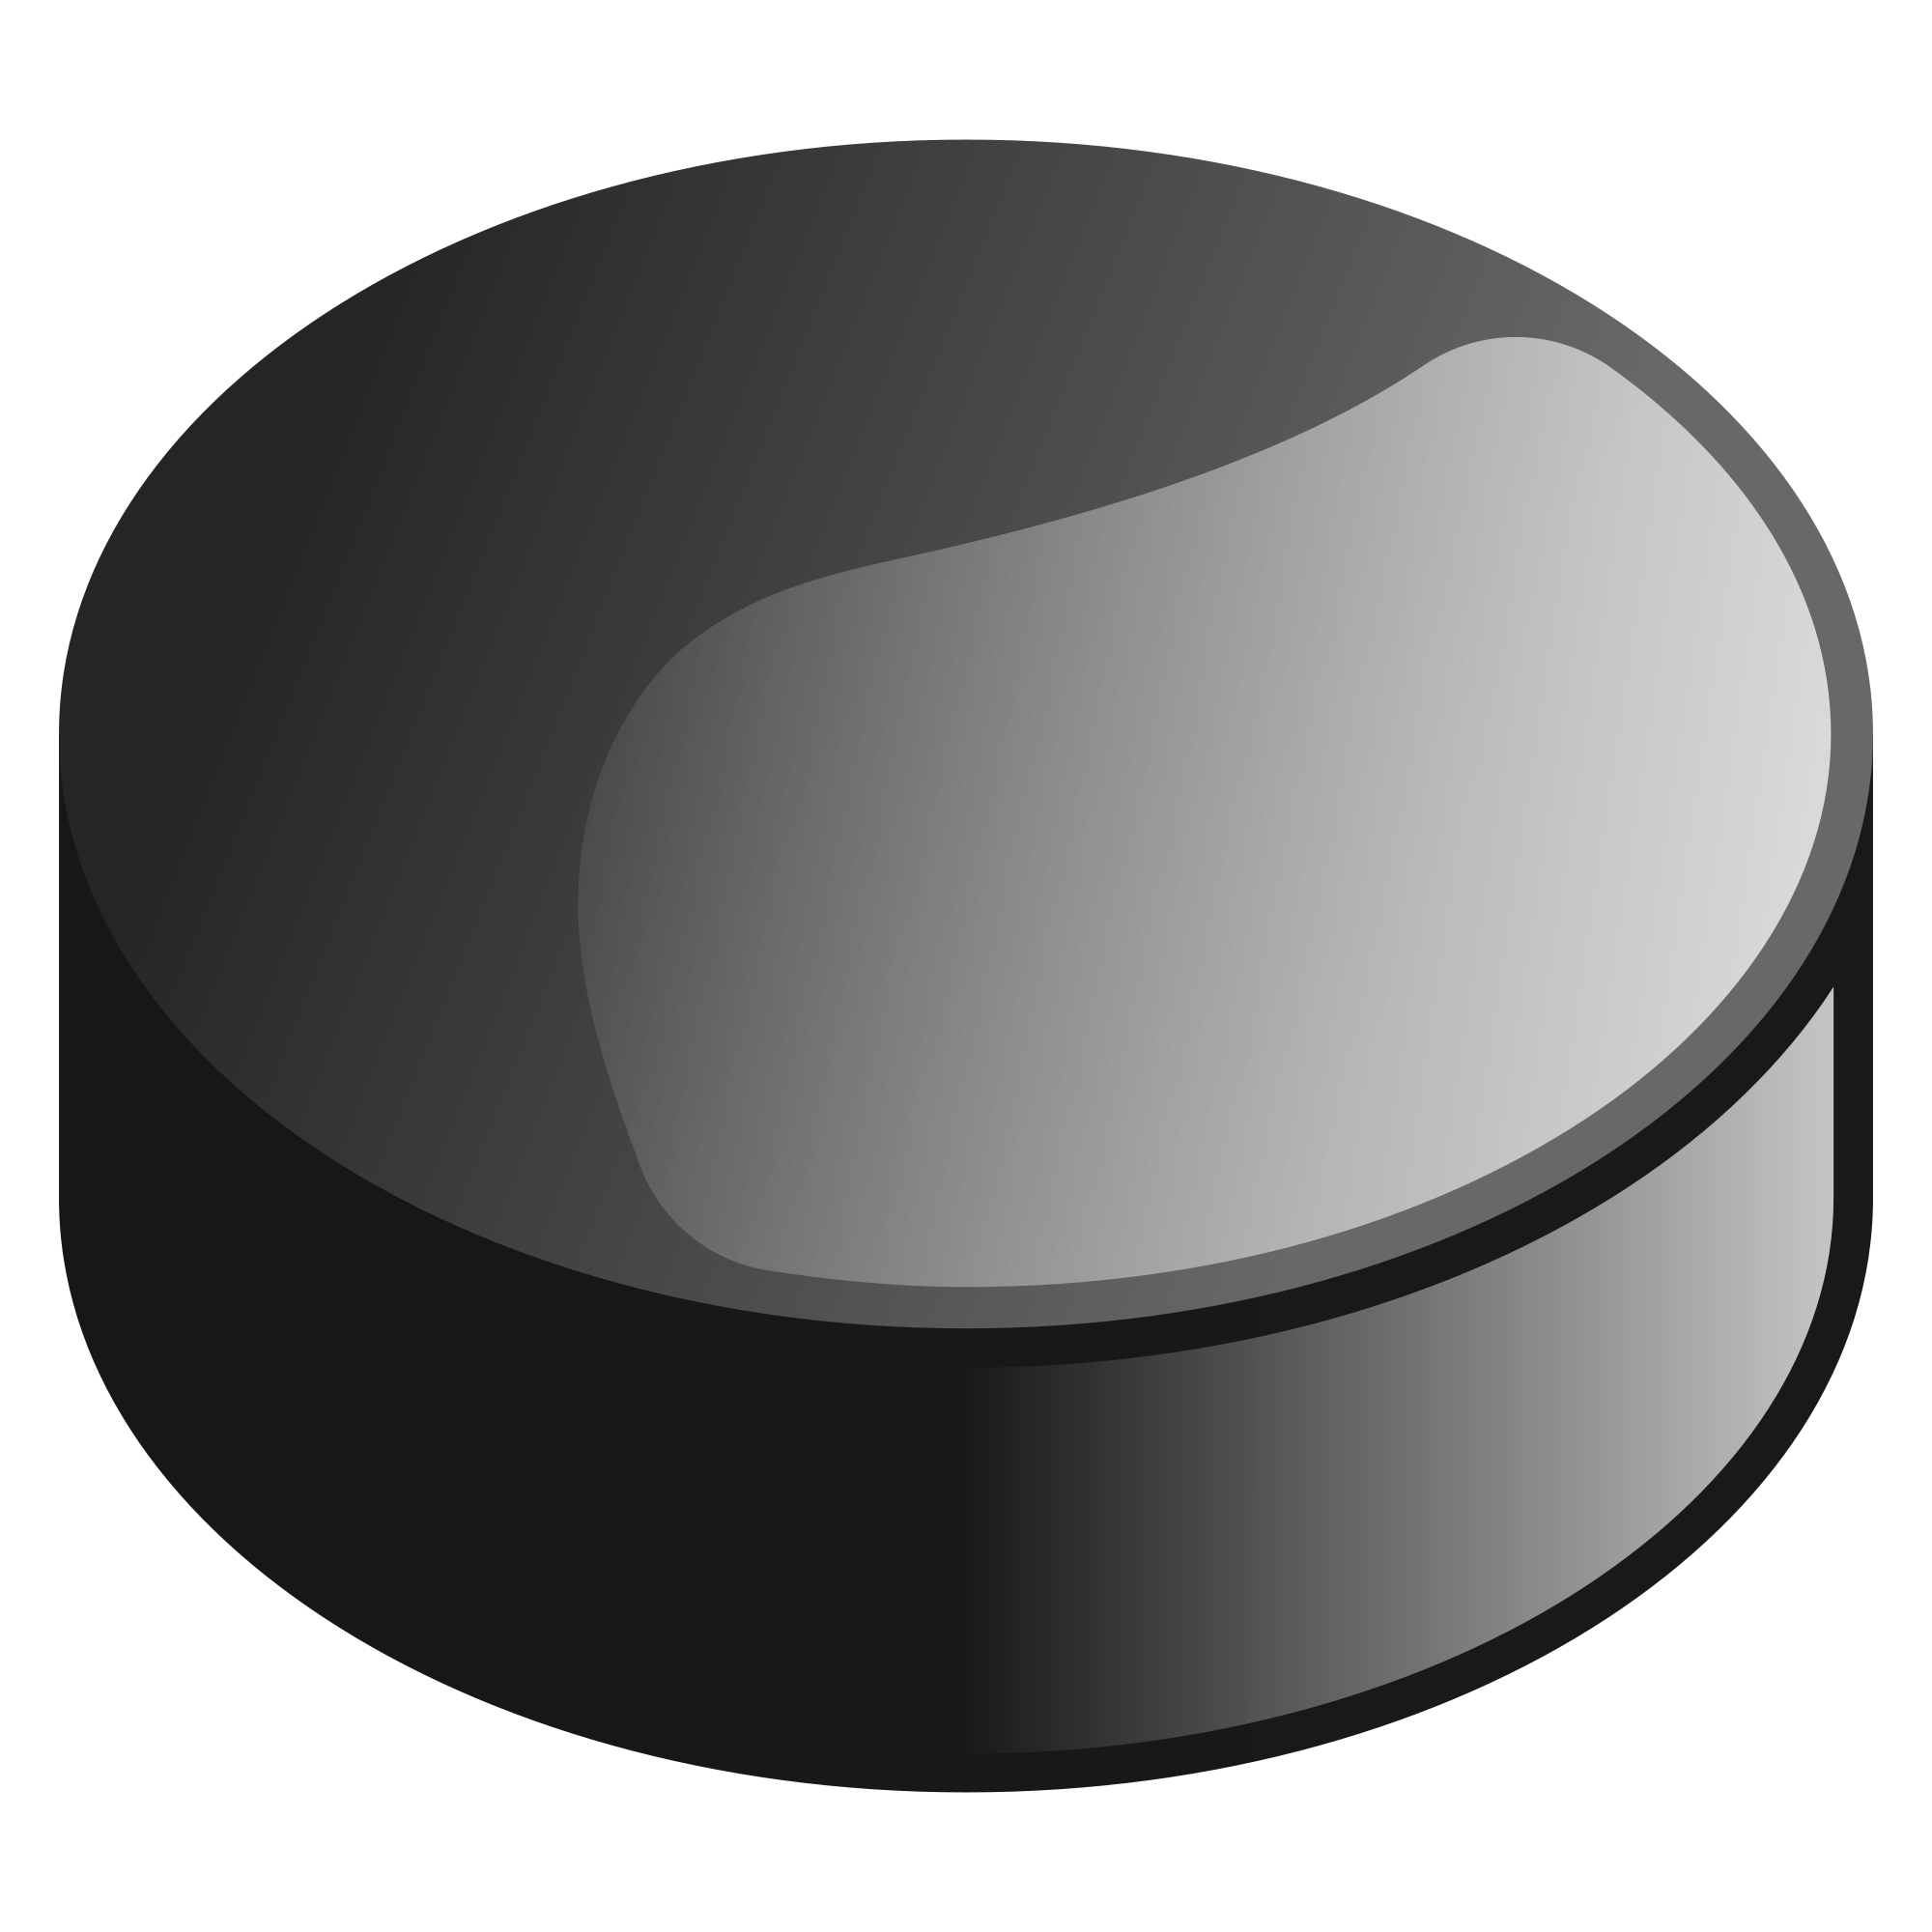 Hockey Puck Clipart Png.